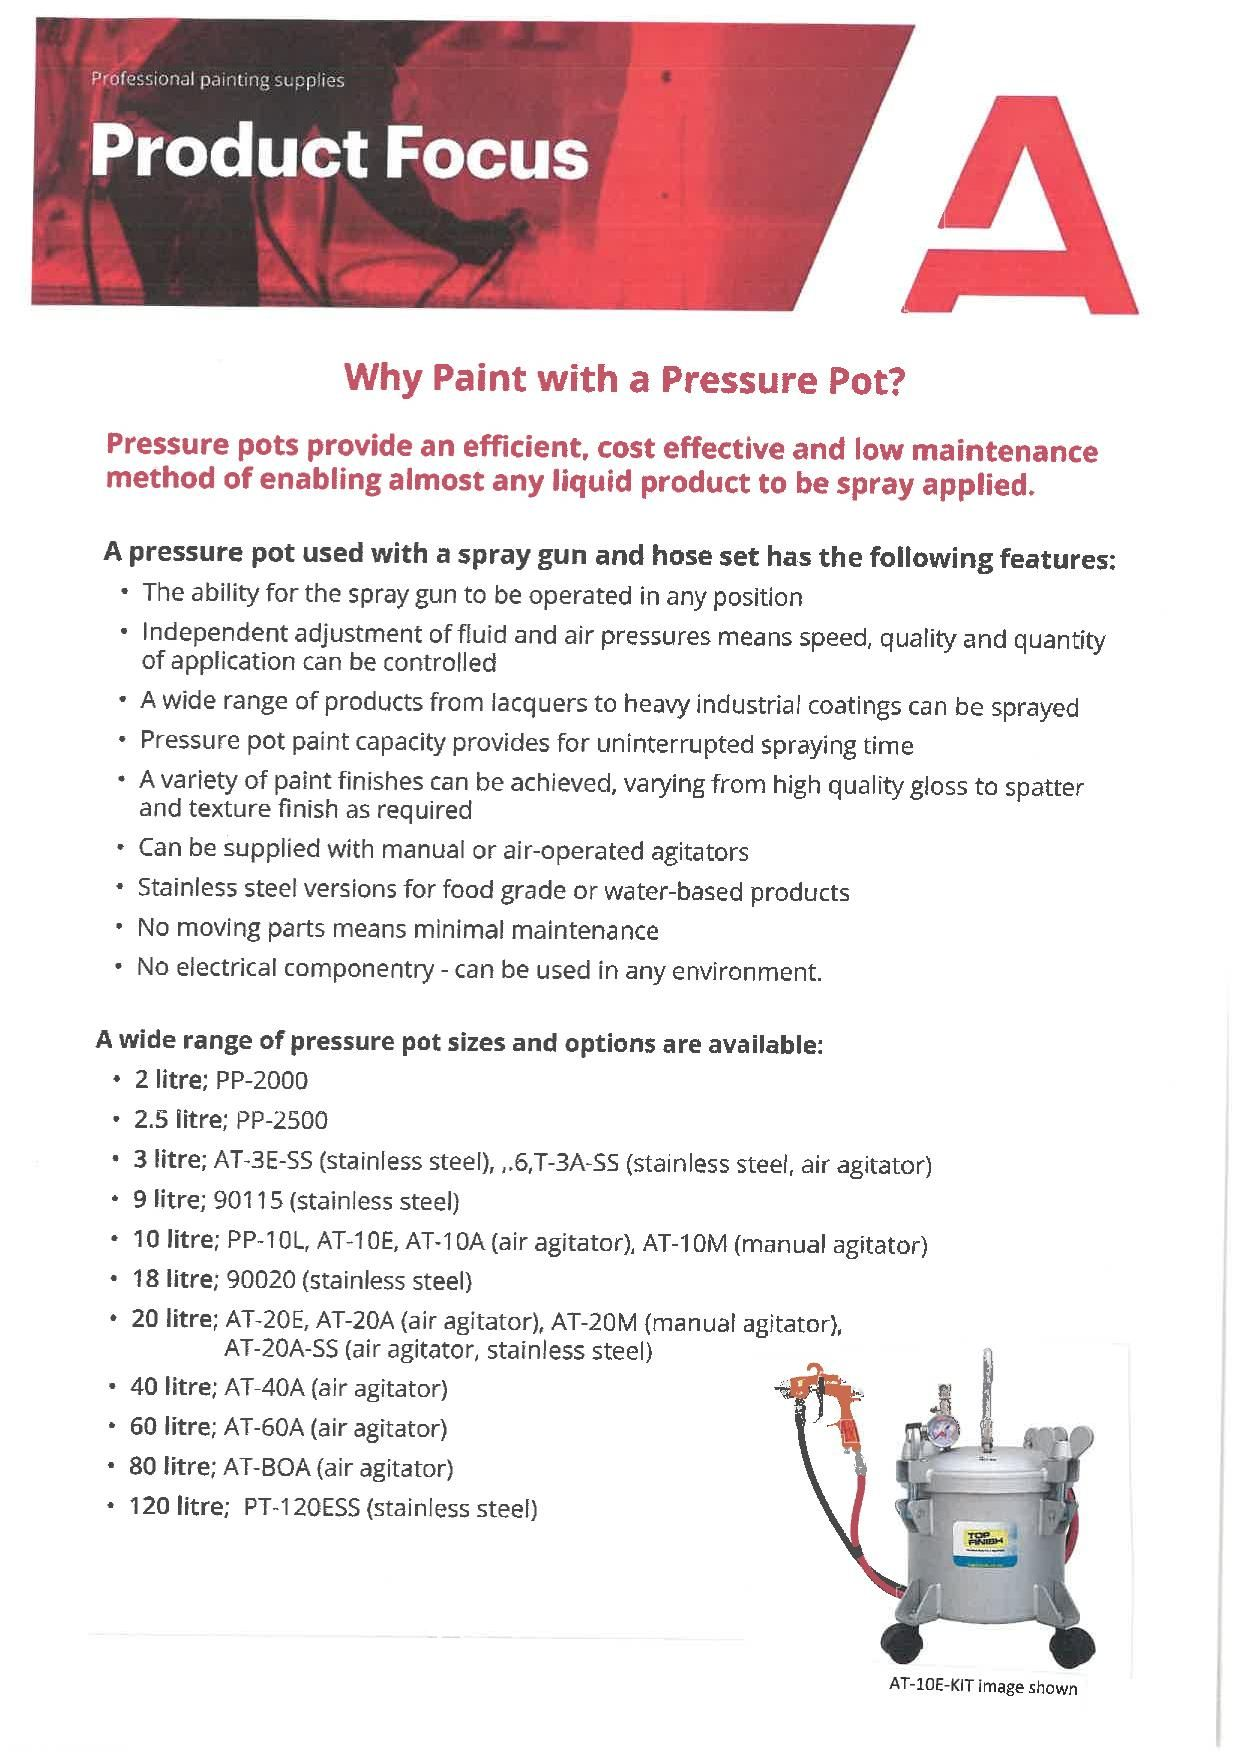 Why Paint with a Pressure Pot?